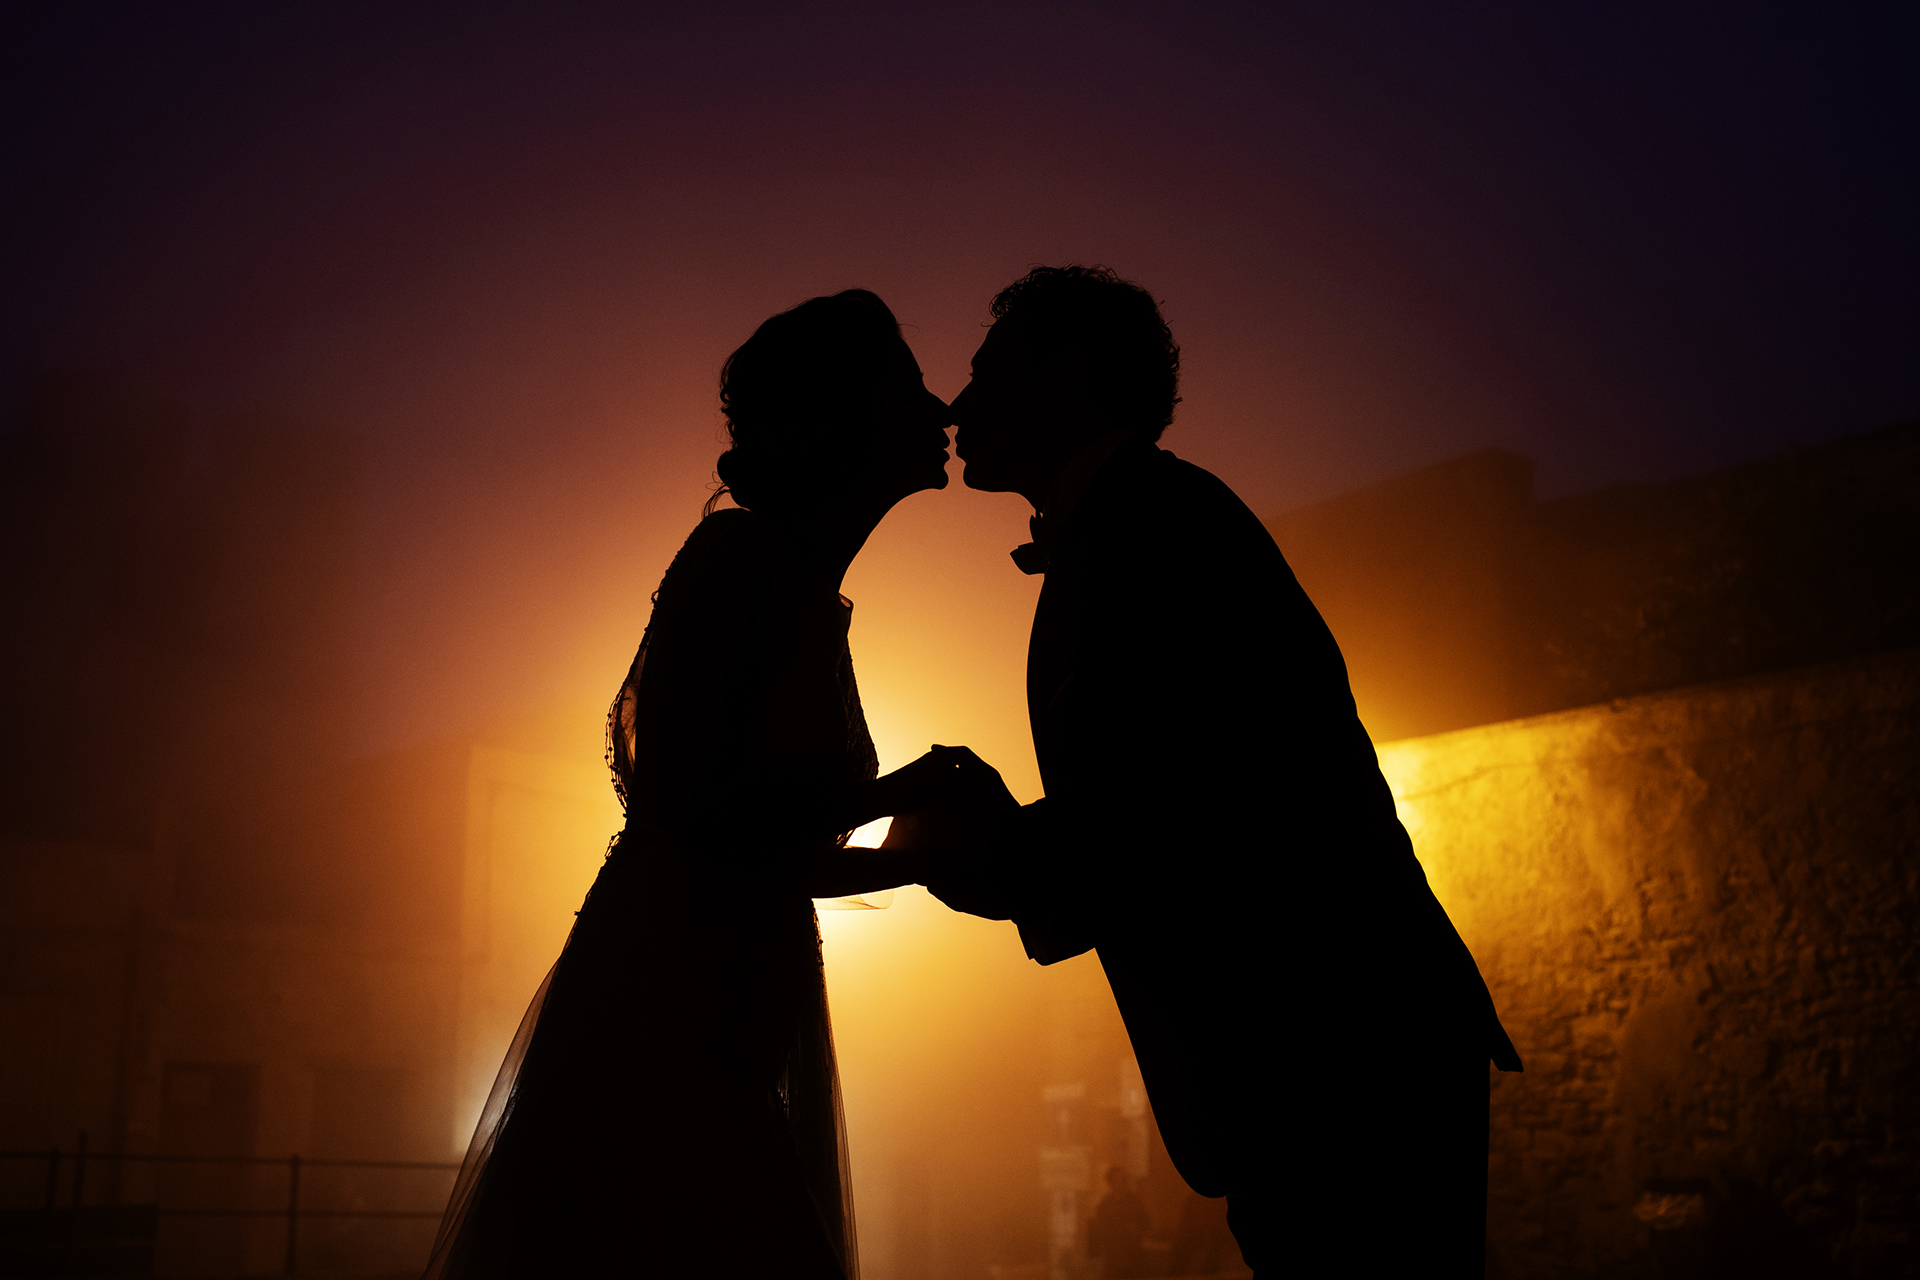 Sicily, Italy Small Wedding Couple Portrait | A photoshoot of the wedding on Mount Erice with the suggestive fog